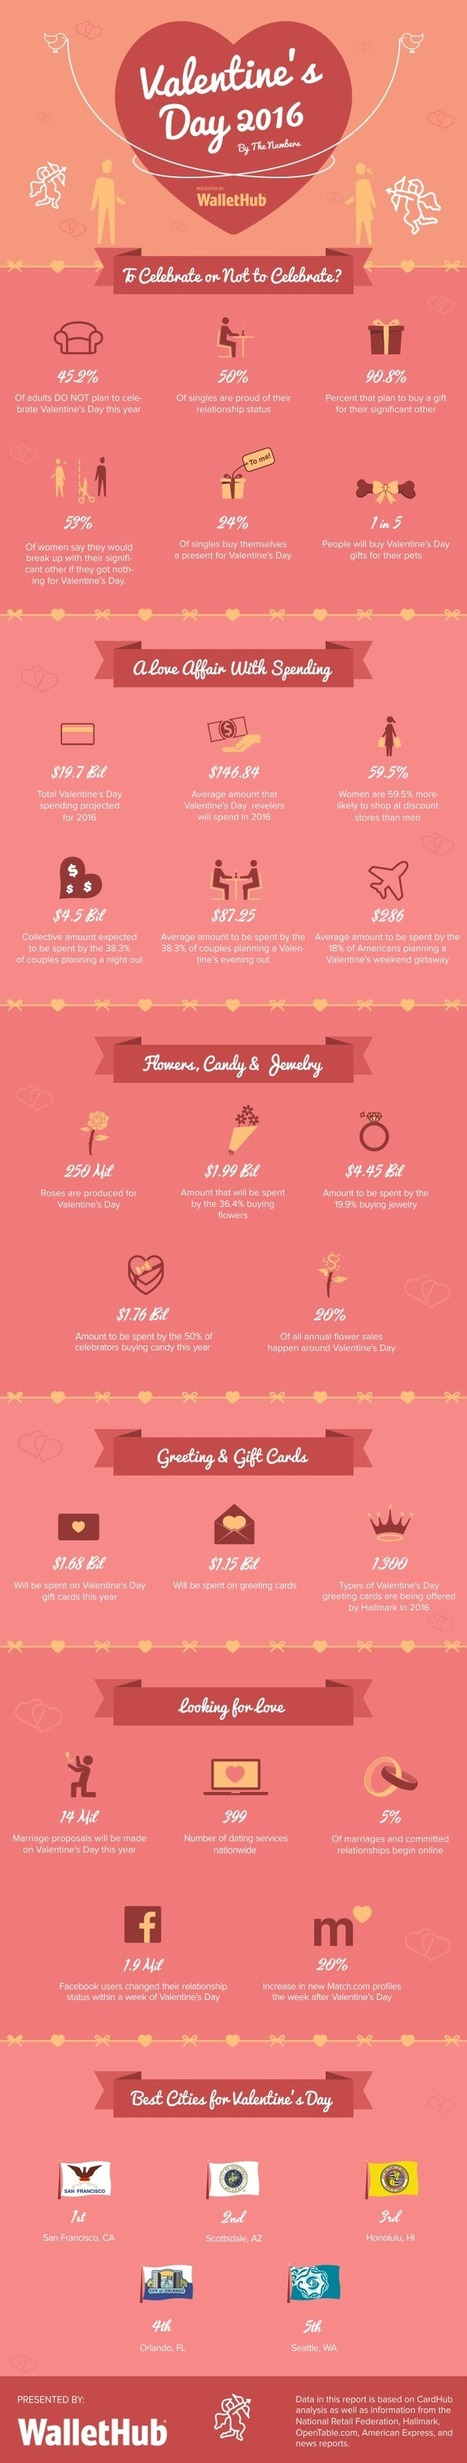 Valentine's Day By The Numbers | Business News & Finance | Scoop.it